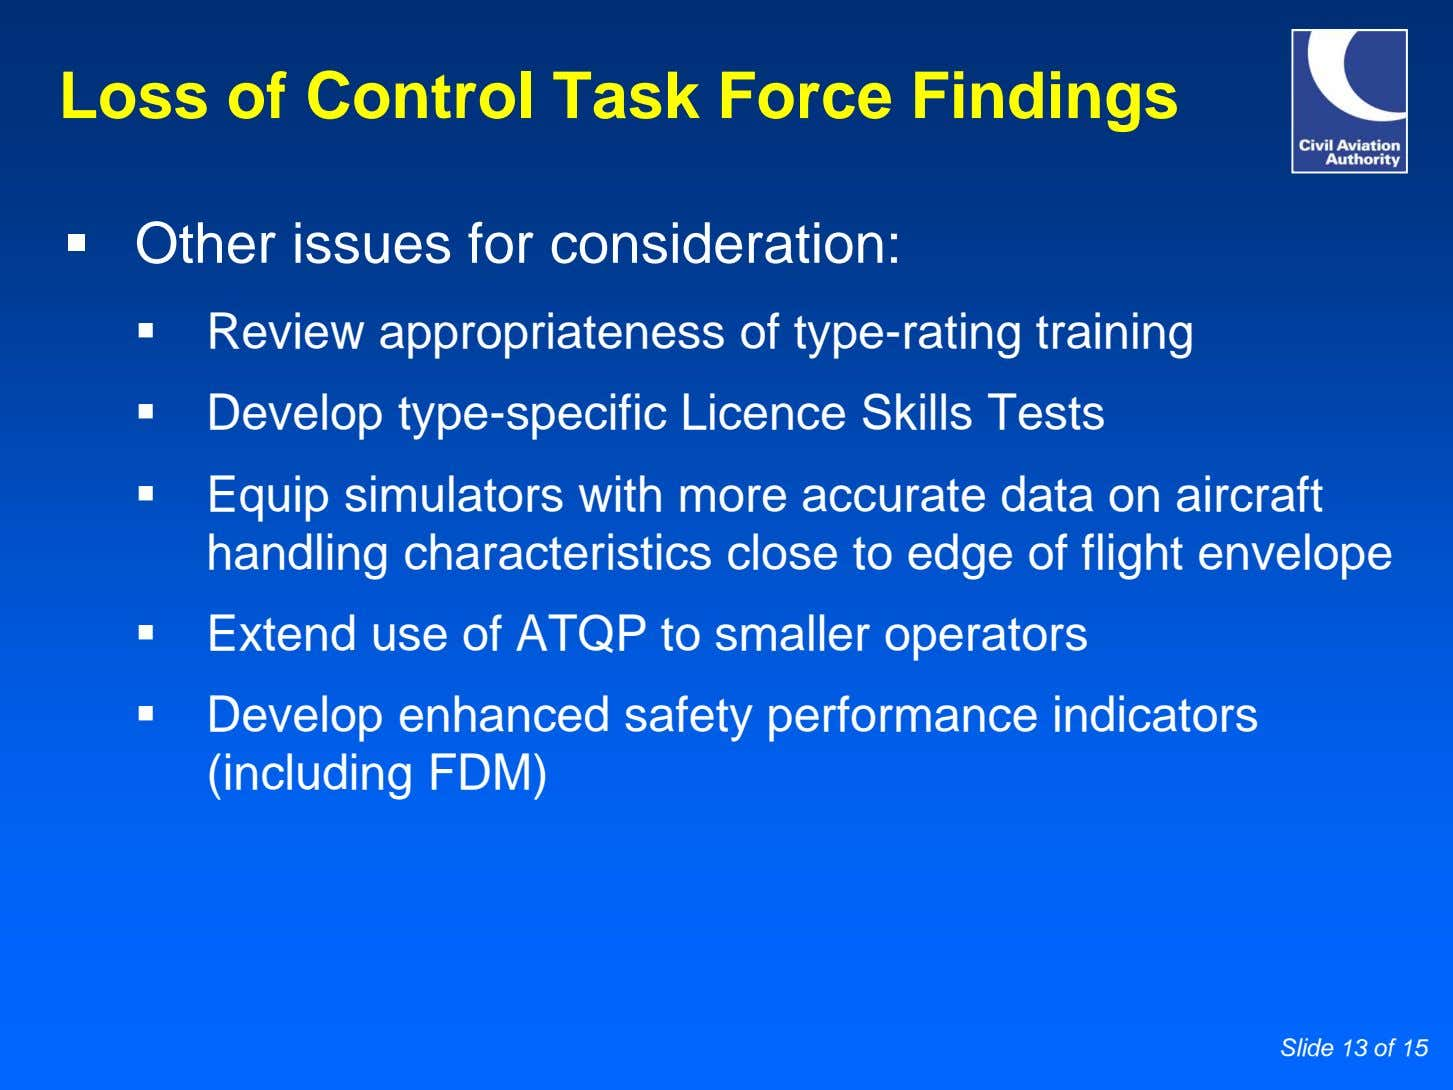 Loss of Control Task Force Findings Other issues for consideration: Review appropriateness of type-rating training